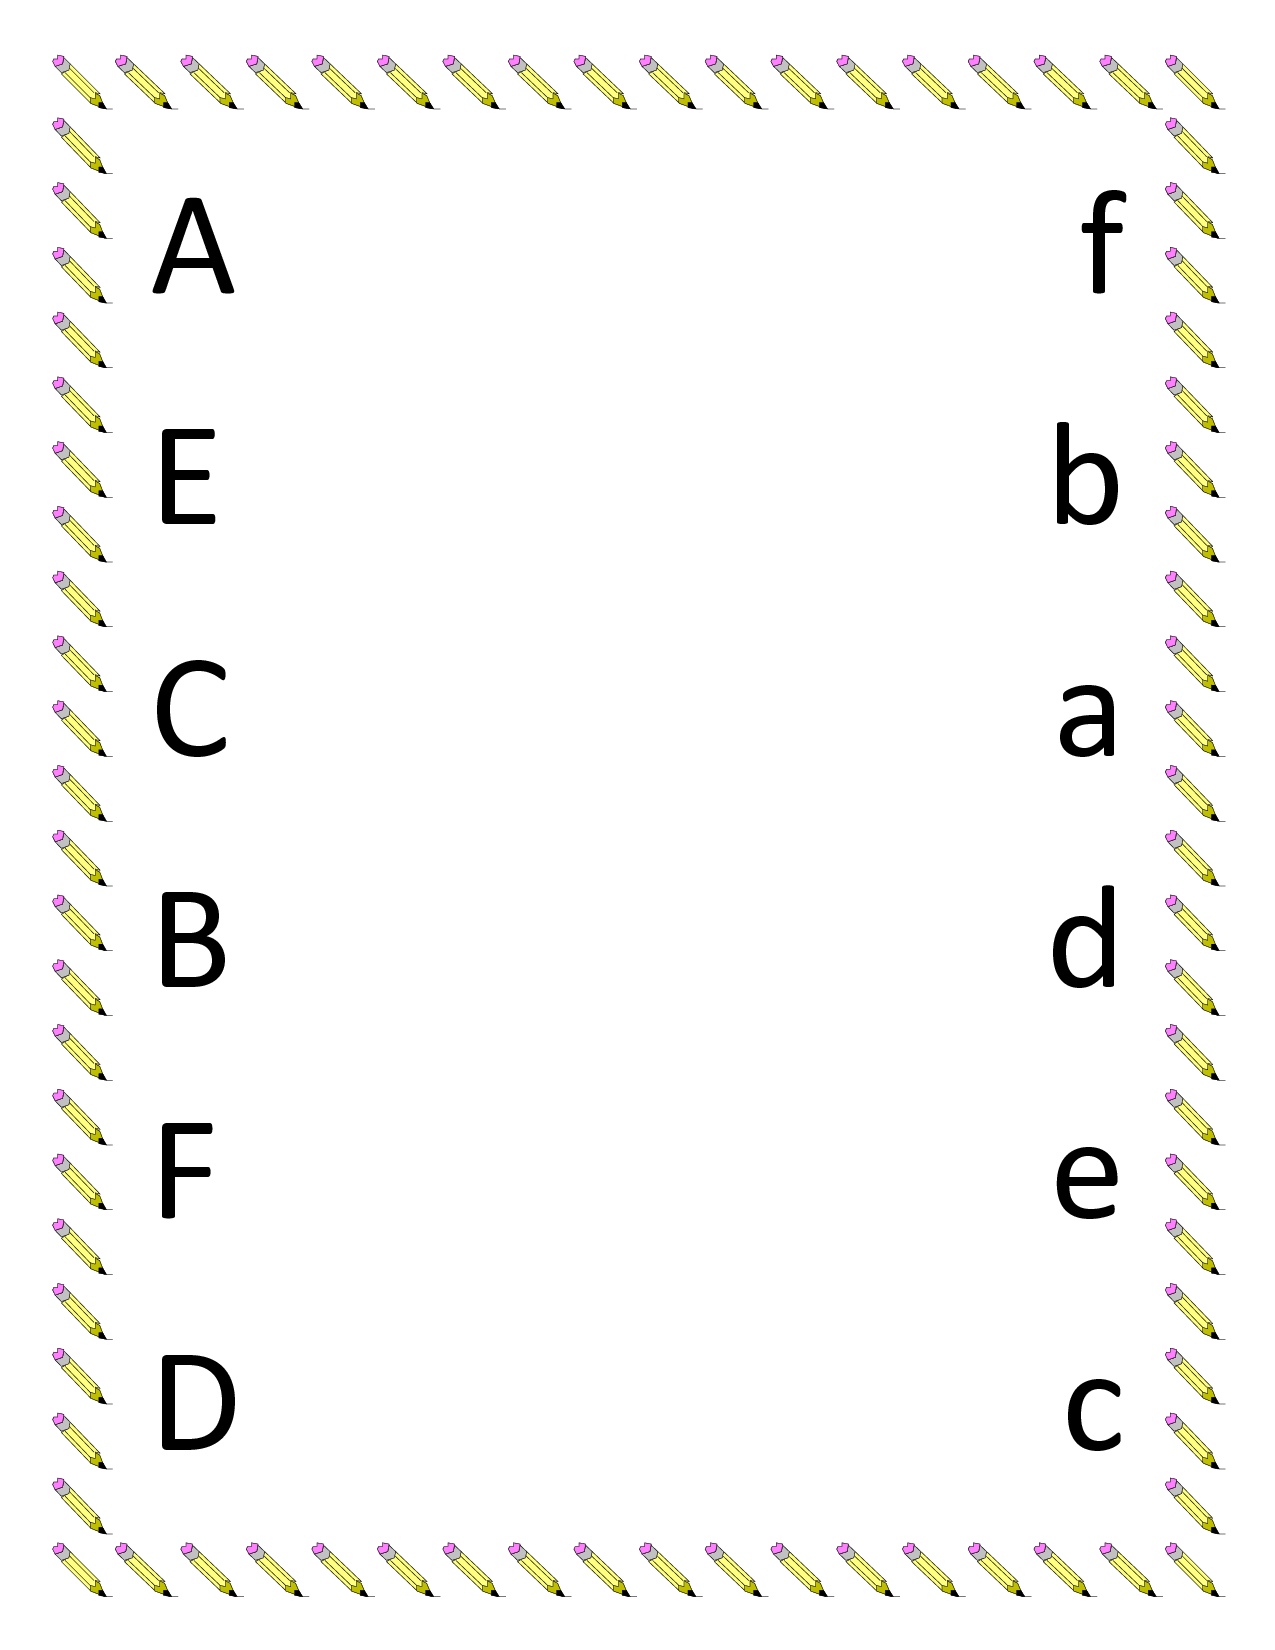 Abc sheets for preschool - Kindergarten Worksheets Preschool Worksheets Printables For Kids 16 Pictures Photos